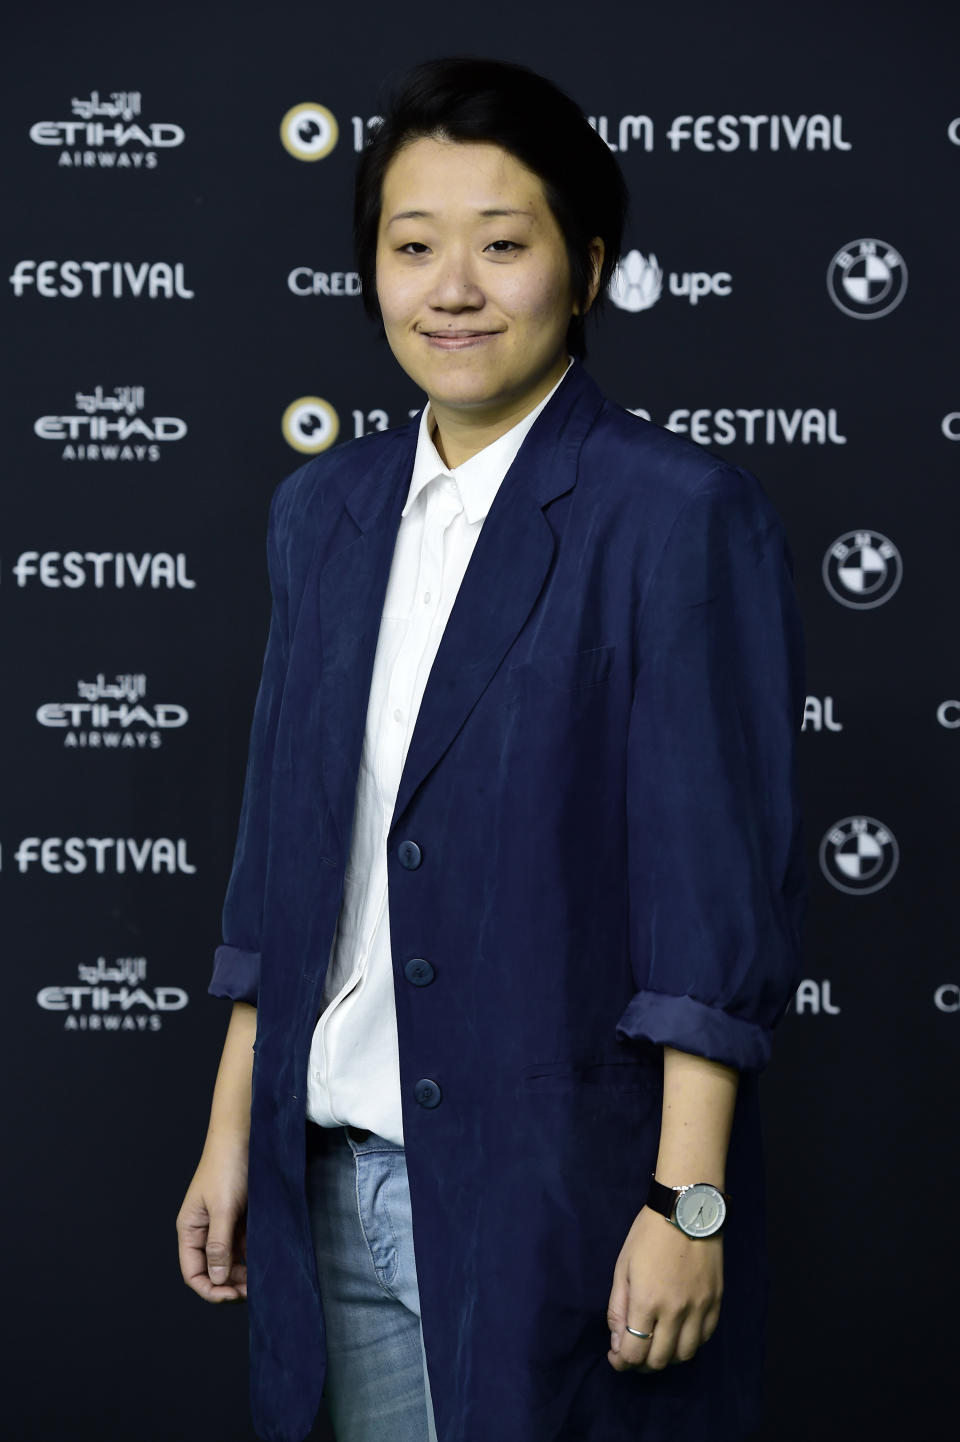 ZURICH, SWITZERLAND - OCTOBER 02:  Kirsten Tan attends the 'Pop Aye' photocall during the 13th Zurich Film Festival on October 2, 2017 in Zurich, Switzerland. The Zurich Film Festival 2017 will take place from September 28 until October 8.  (Photo by Alexander Koerner/Getty Images)